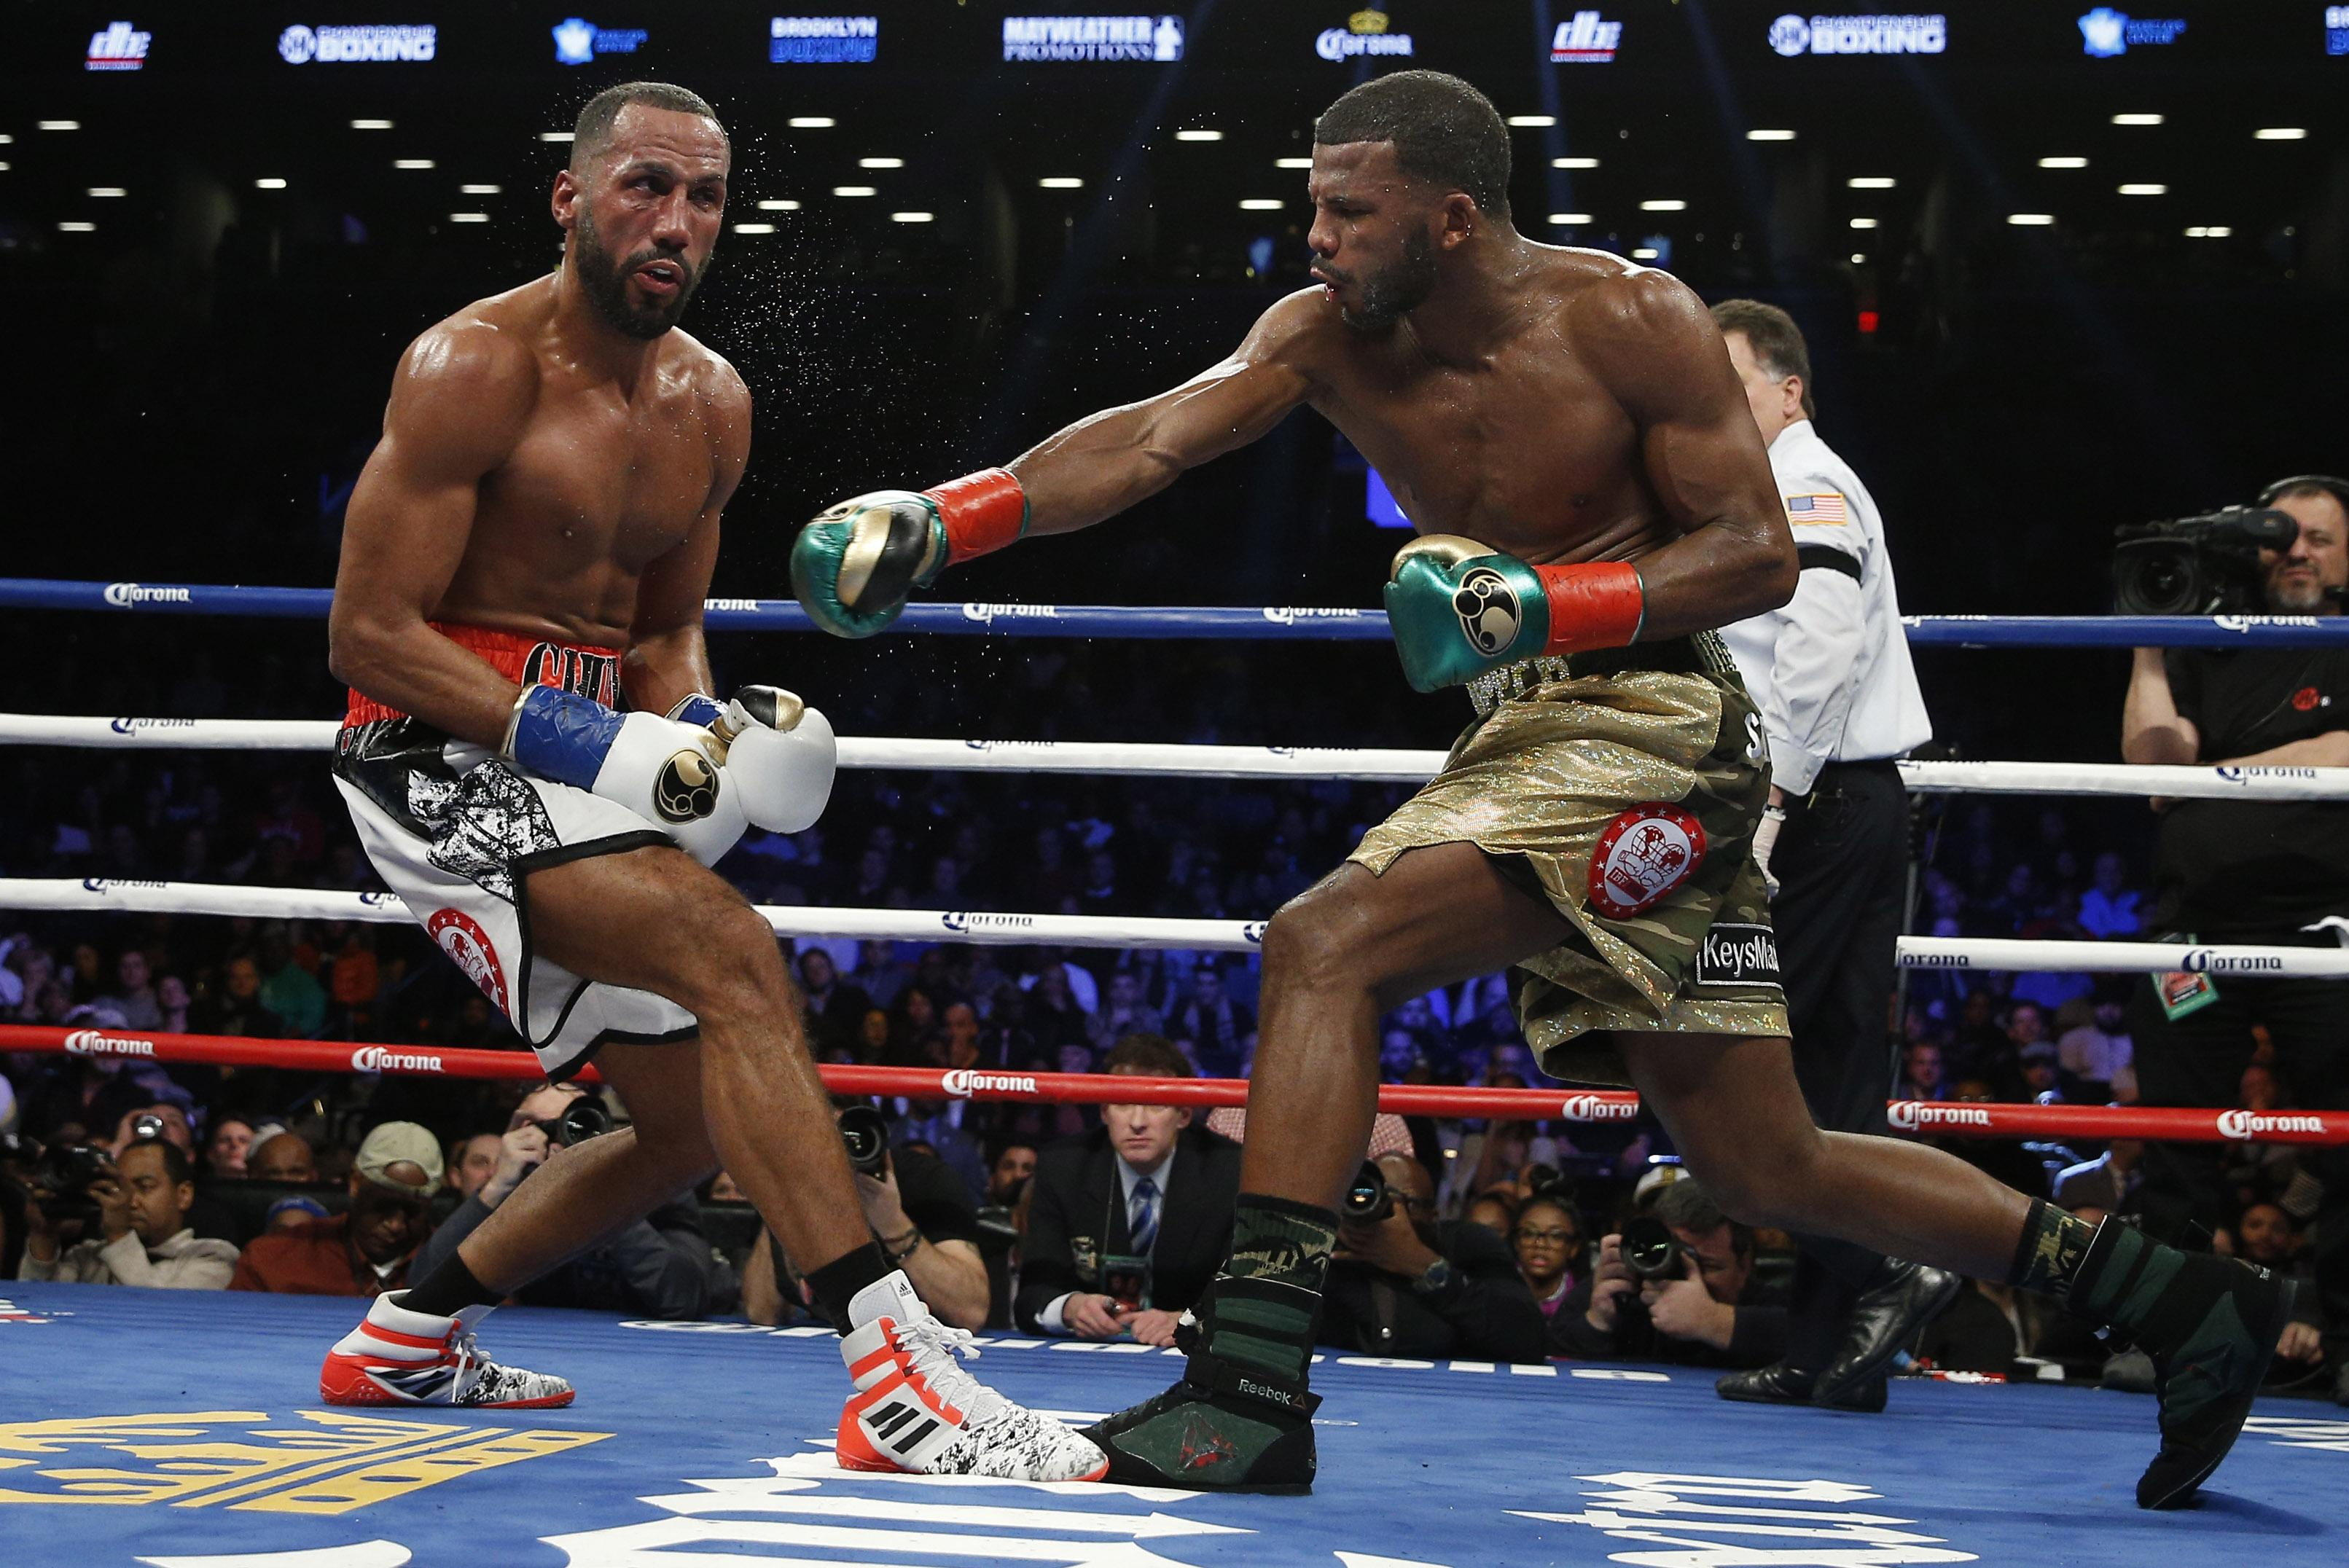 Brit James DeGale had his teeth knocked out by Badou Jack in a controversial draw